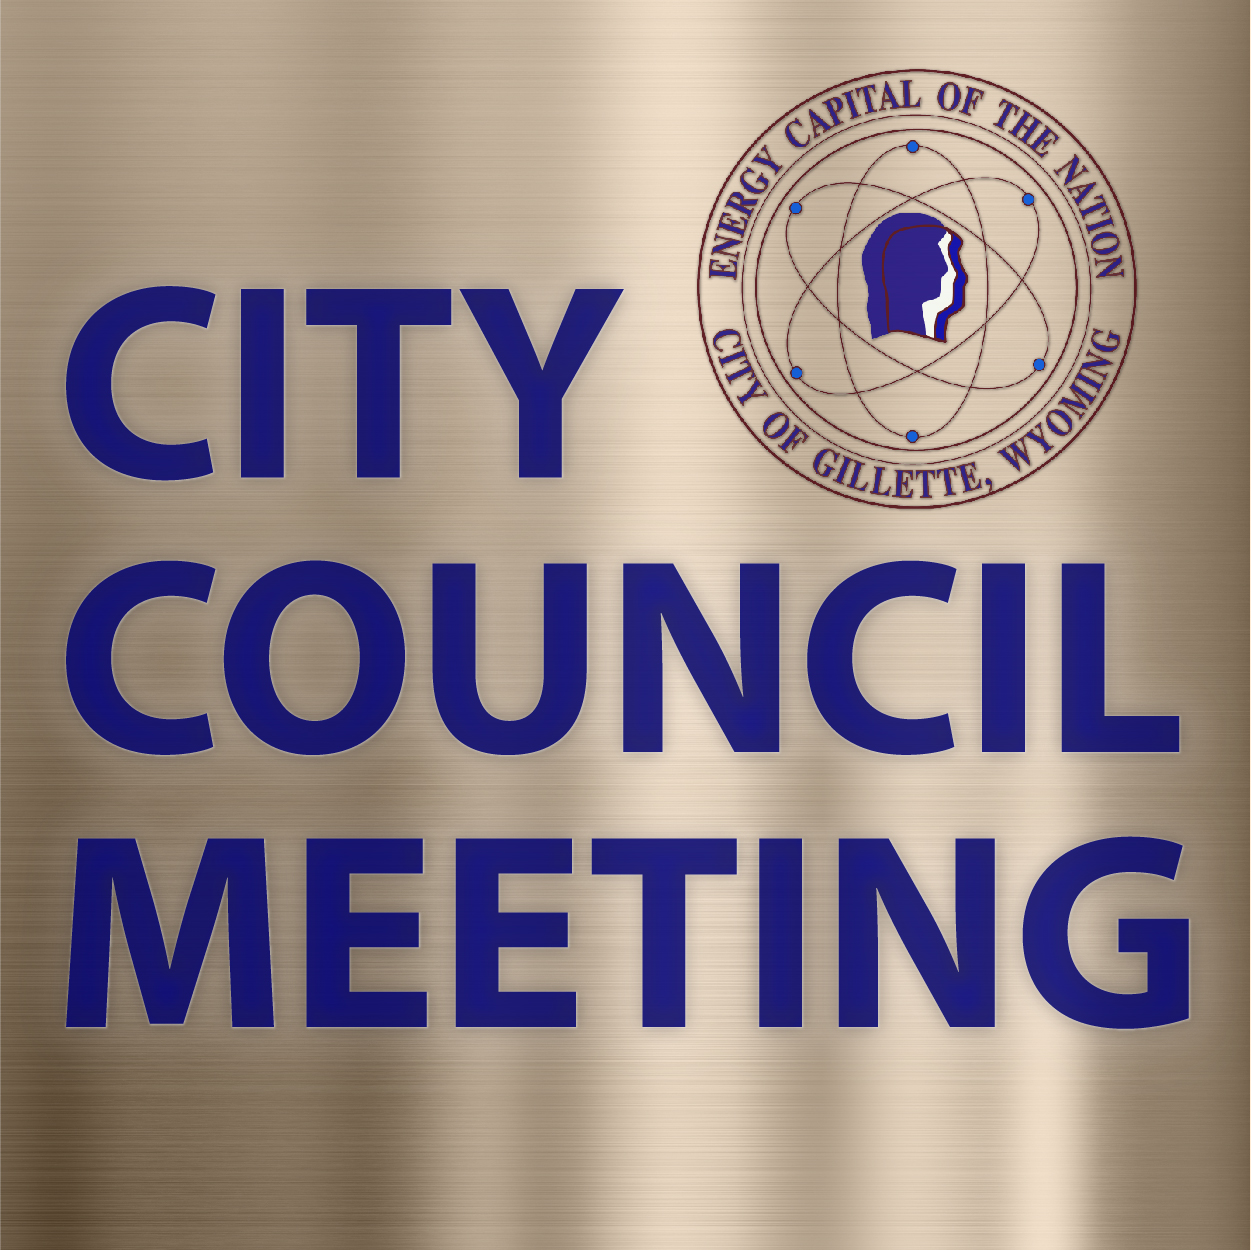 City Council Meeting - July 7th, 2020